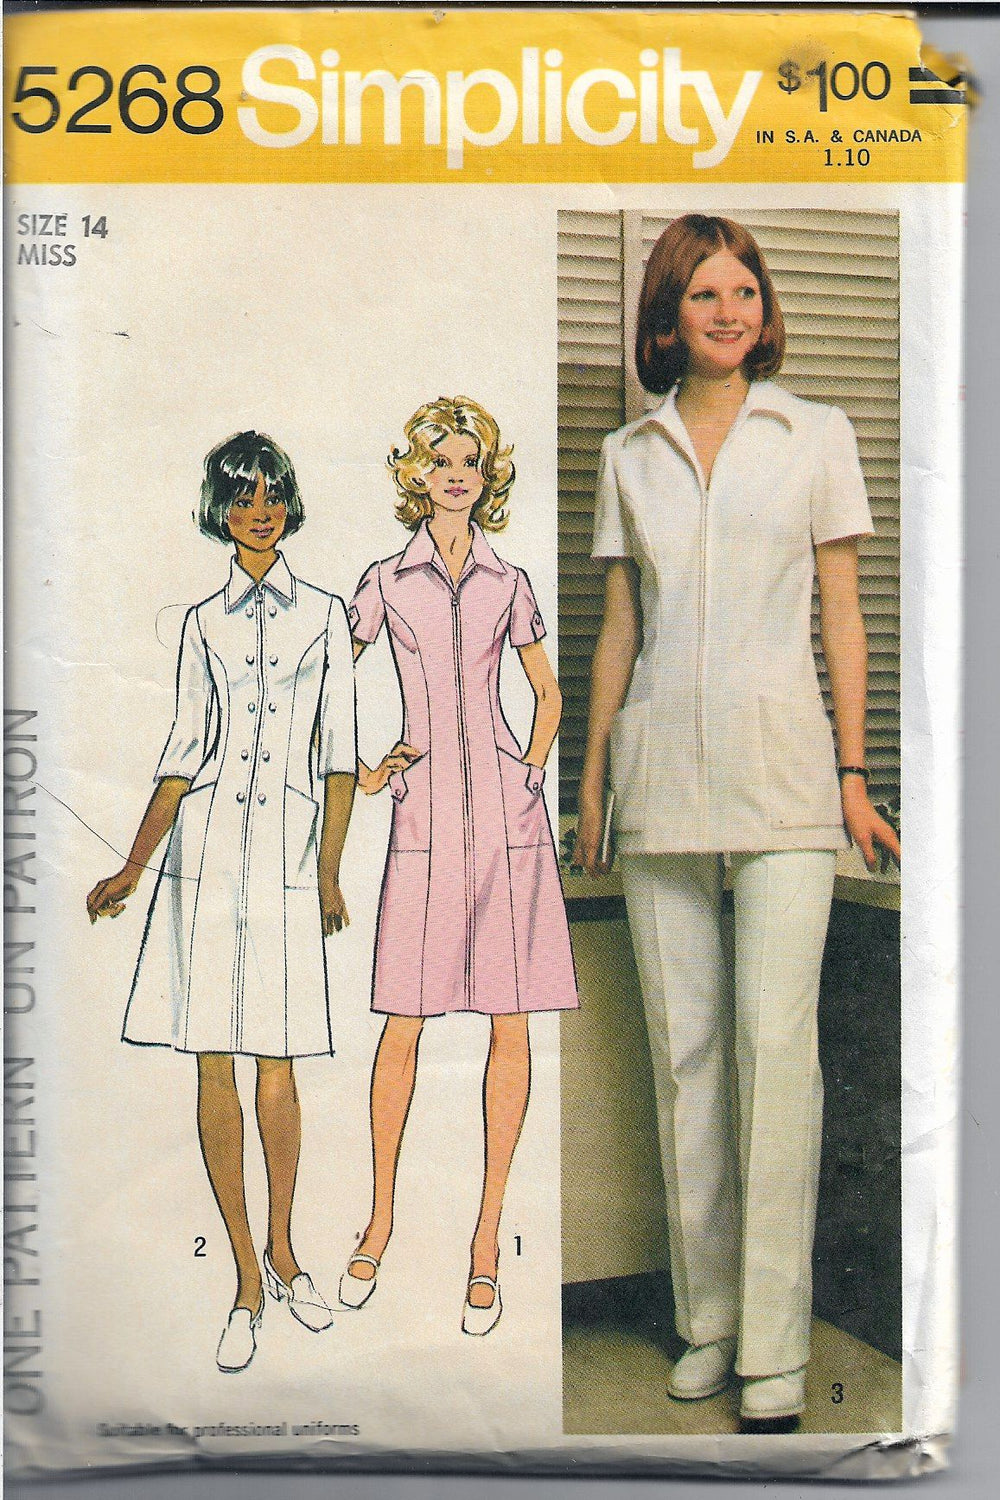 Simplicity 5268 Ladies Nurse Uniform Vintage Sewing Pattern 1970's - VintageStitching - Vintage Sewing Patterns